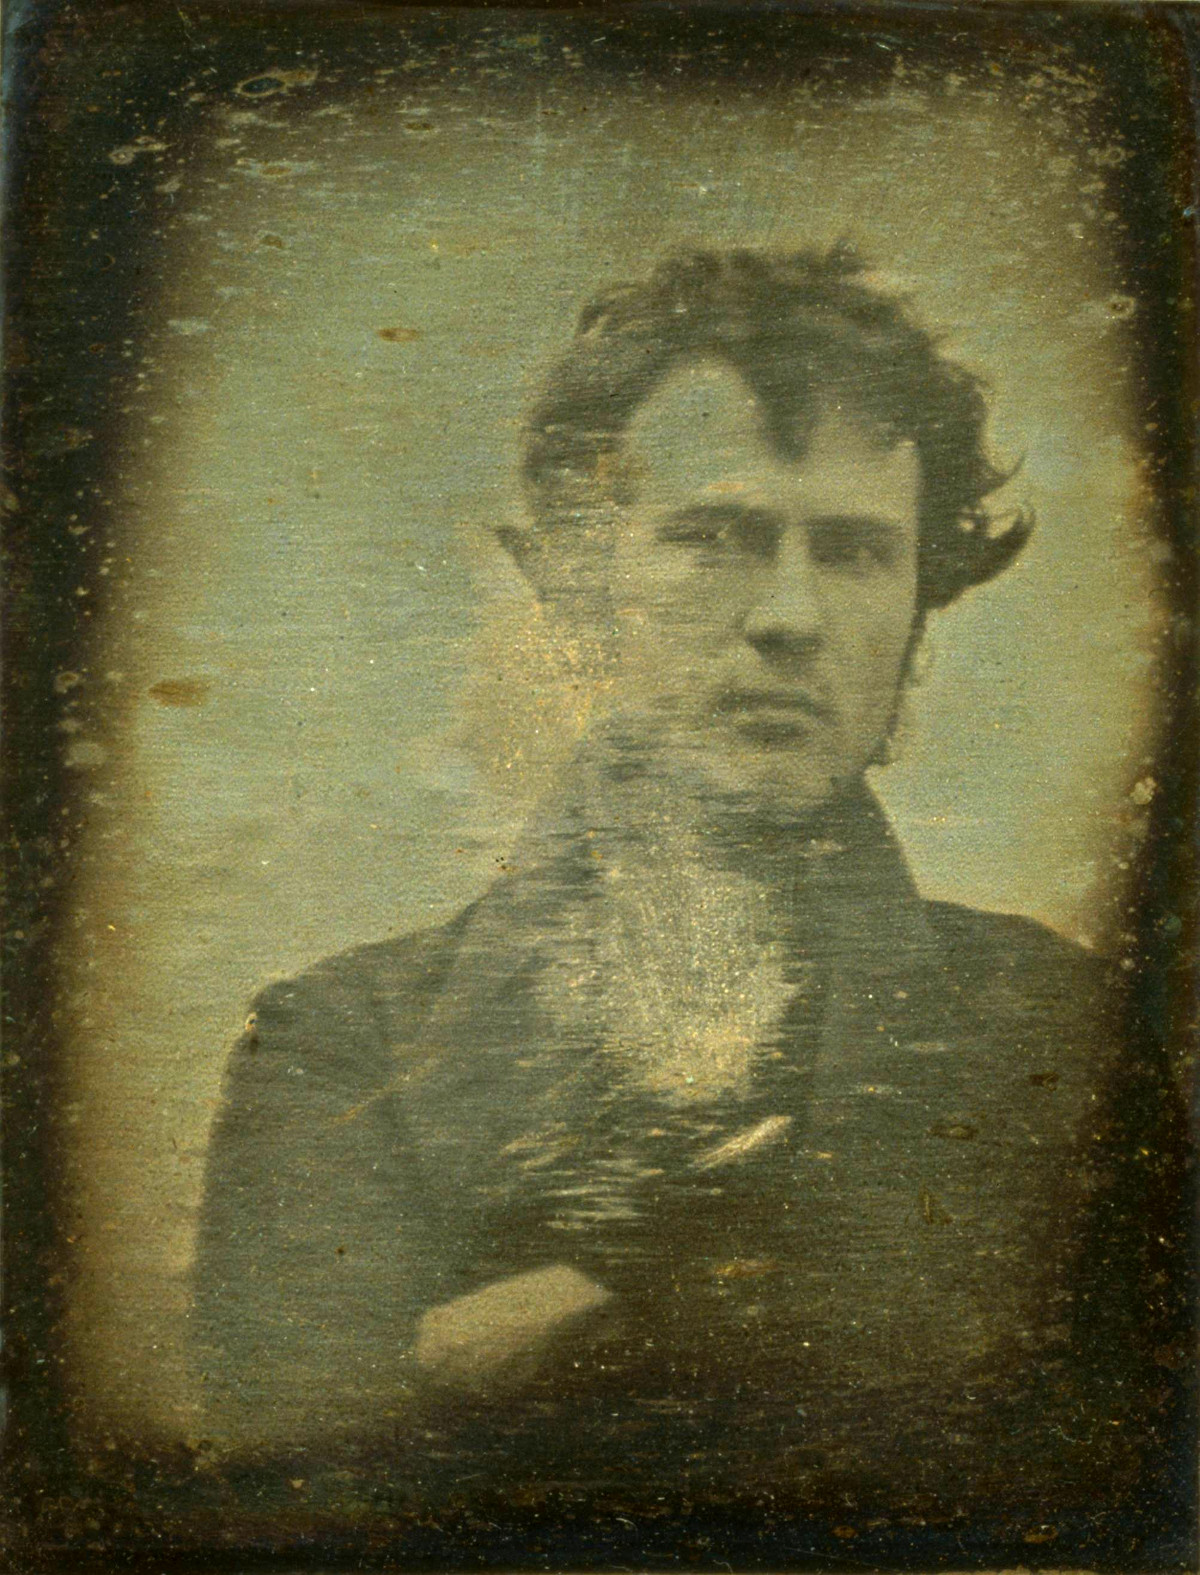 First 'Selfie' photograph of Robert Cornelius, 1839